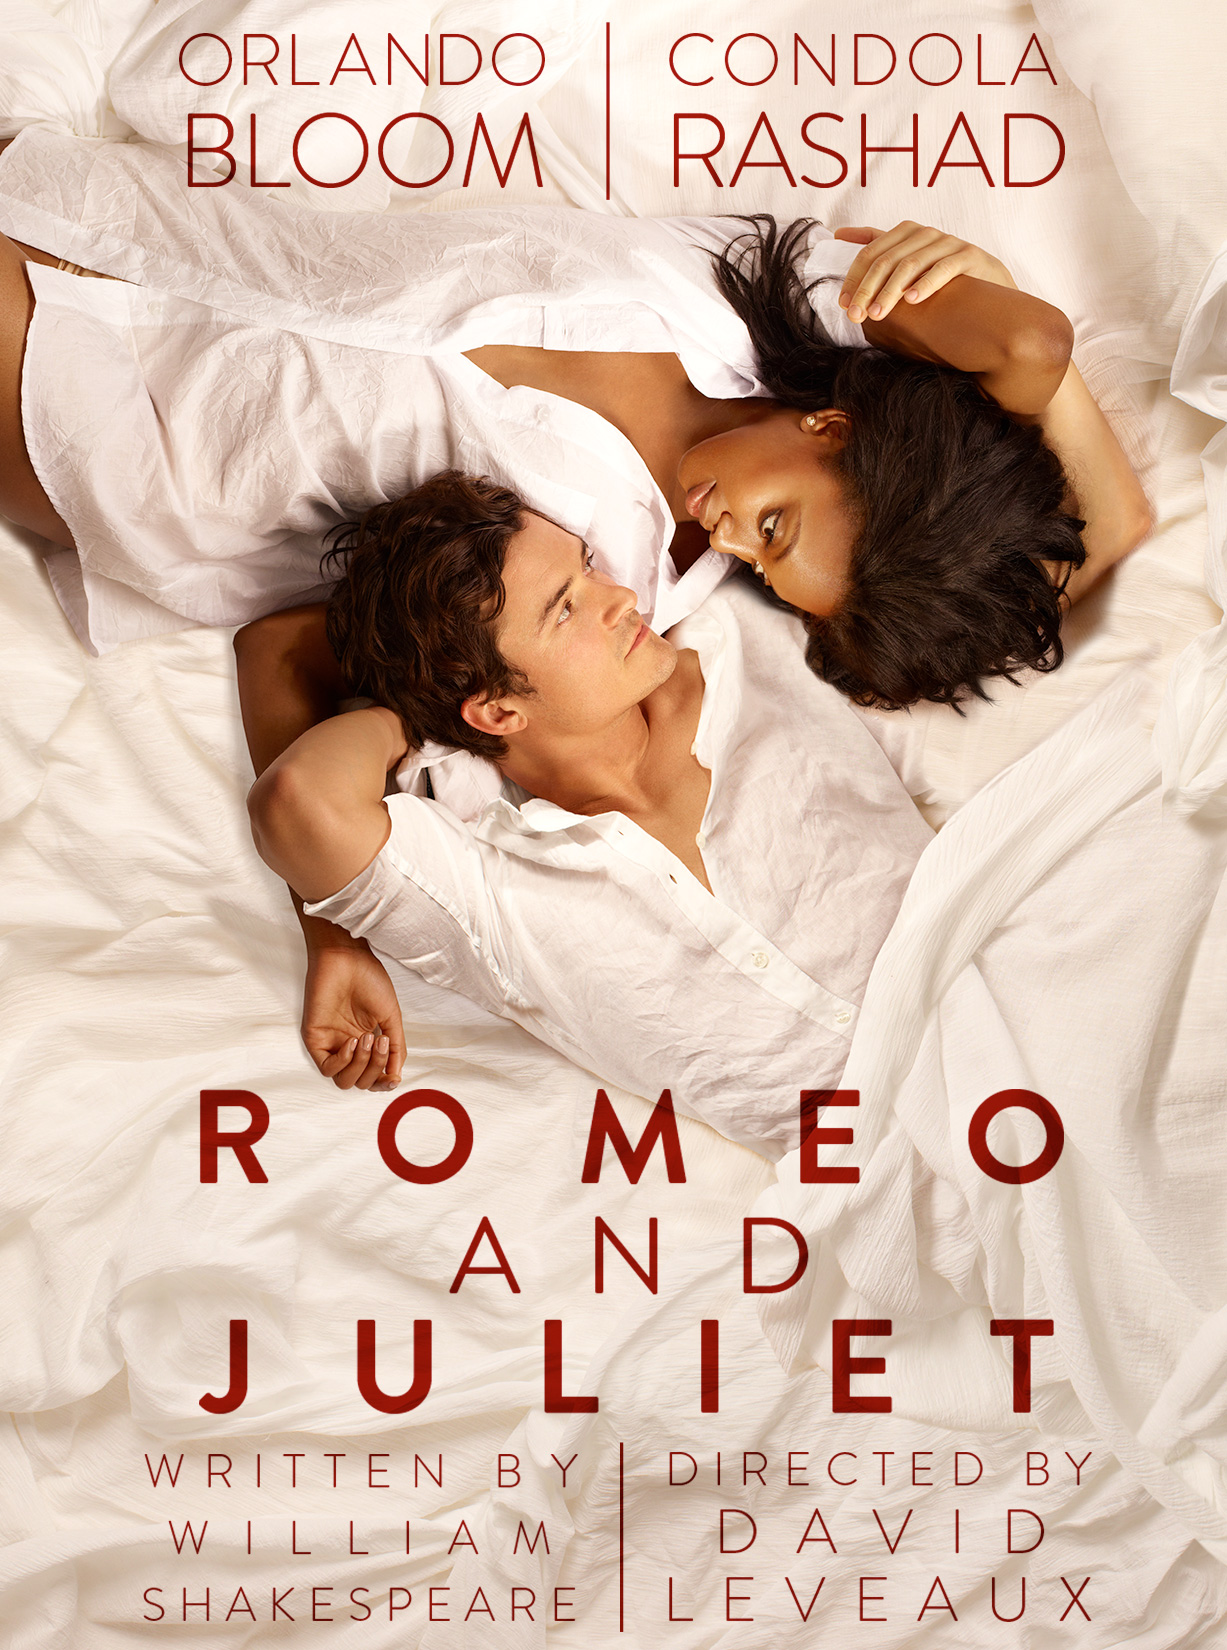 Romeo-and-Juliet-Orlando-Bloom-by-Robert-Ascroft.jpg